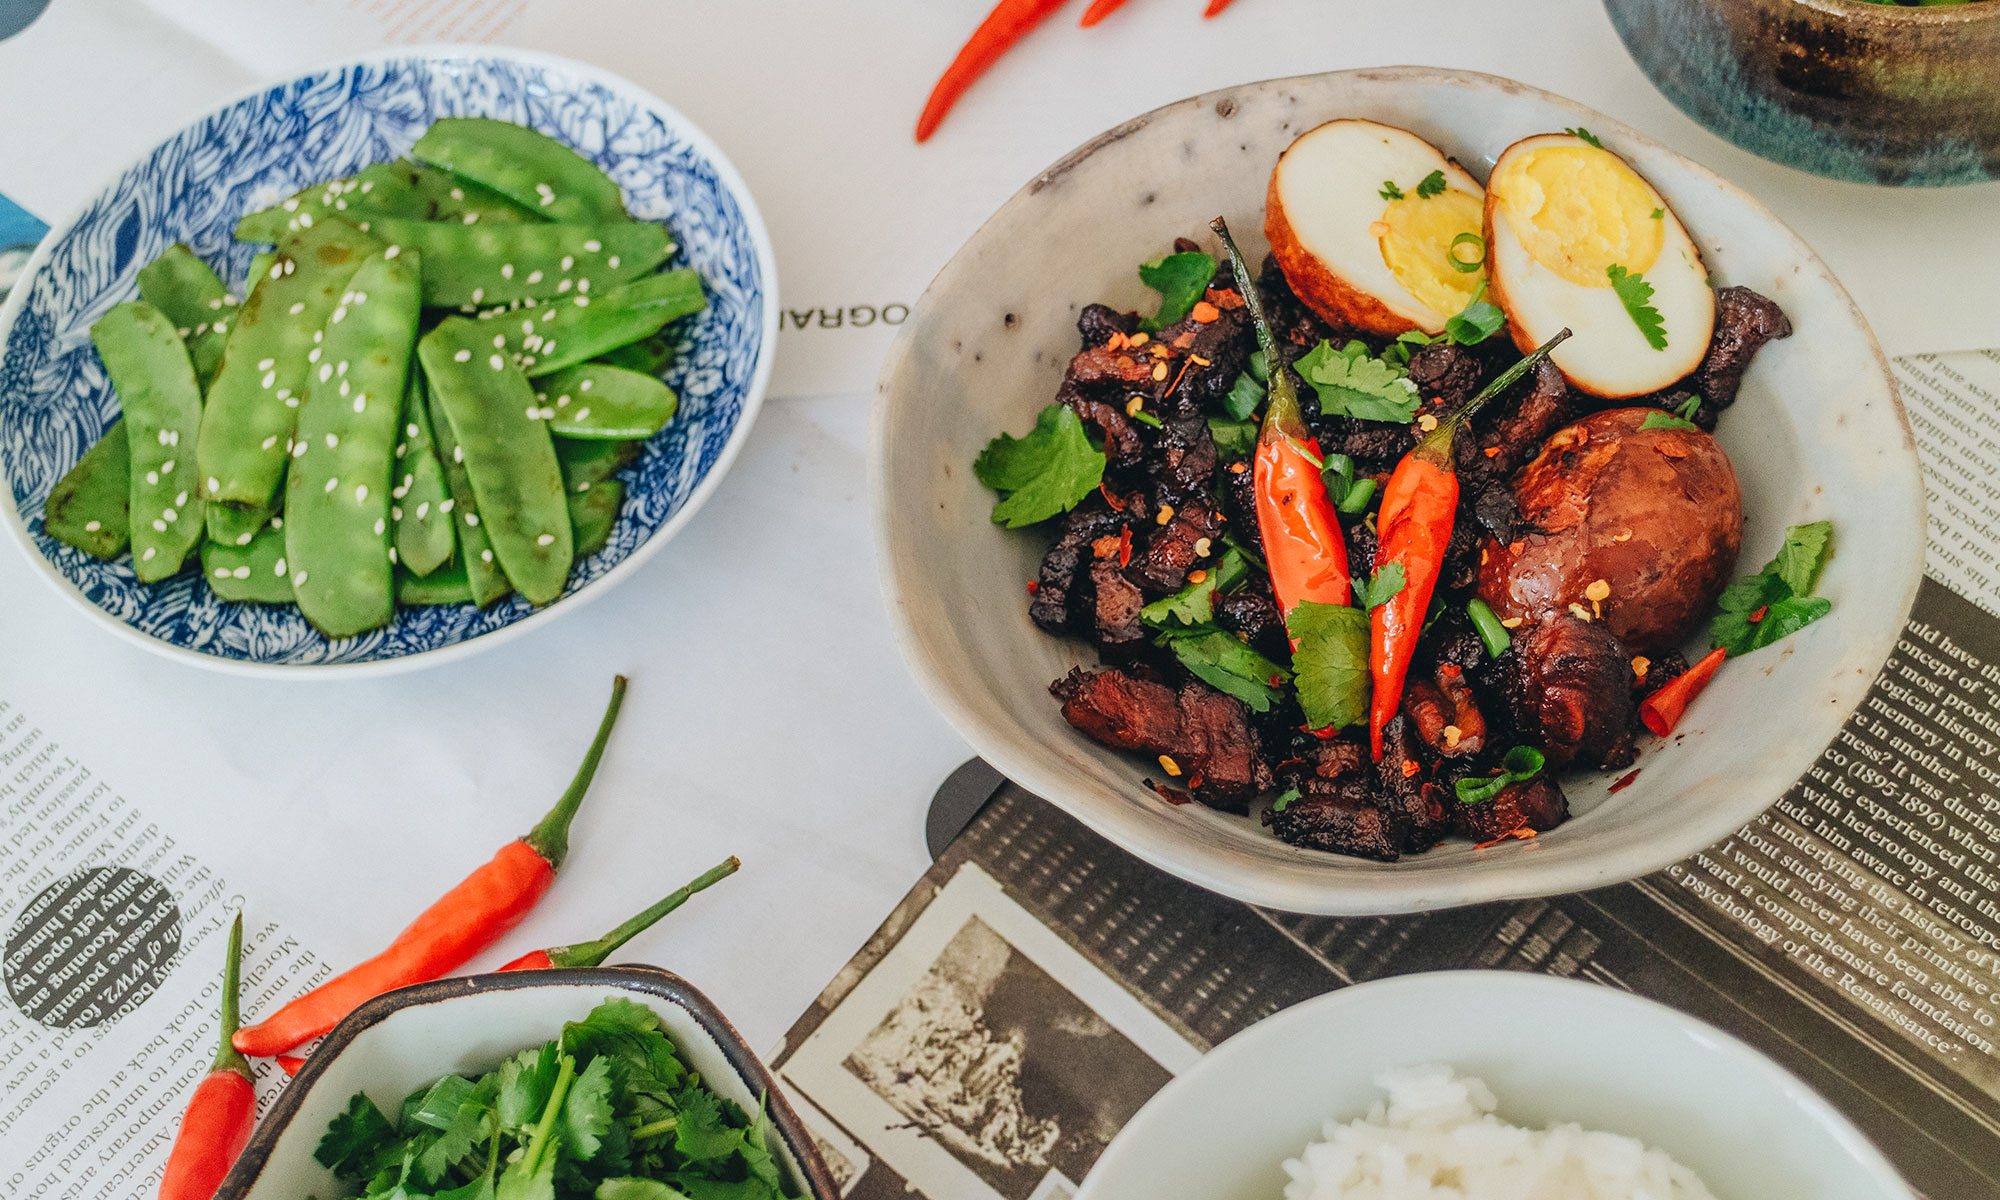 Caramelized Porkbelly with Eggs – Thịt Kho Rezept / Classic & Authentic Vietnamese Dish Recipe by Alice M. Huynh – Travel, Food & Lifestyleblogger on iHeartAlice.com